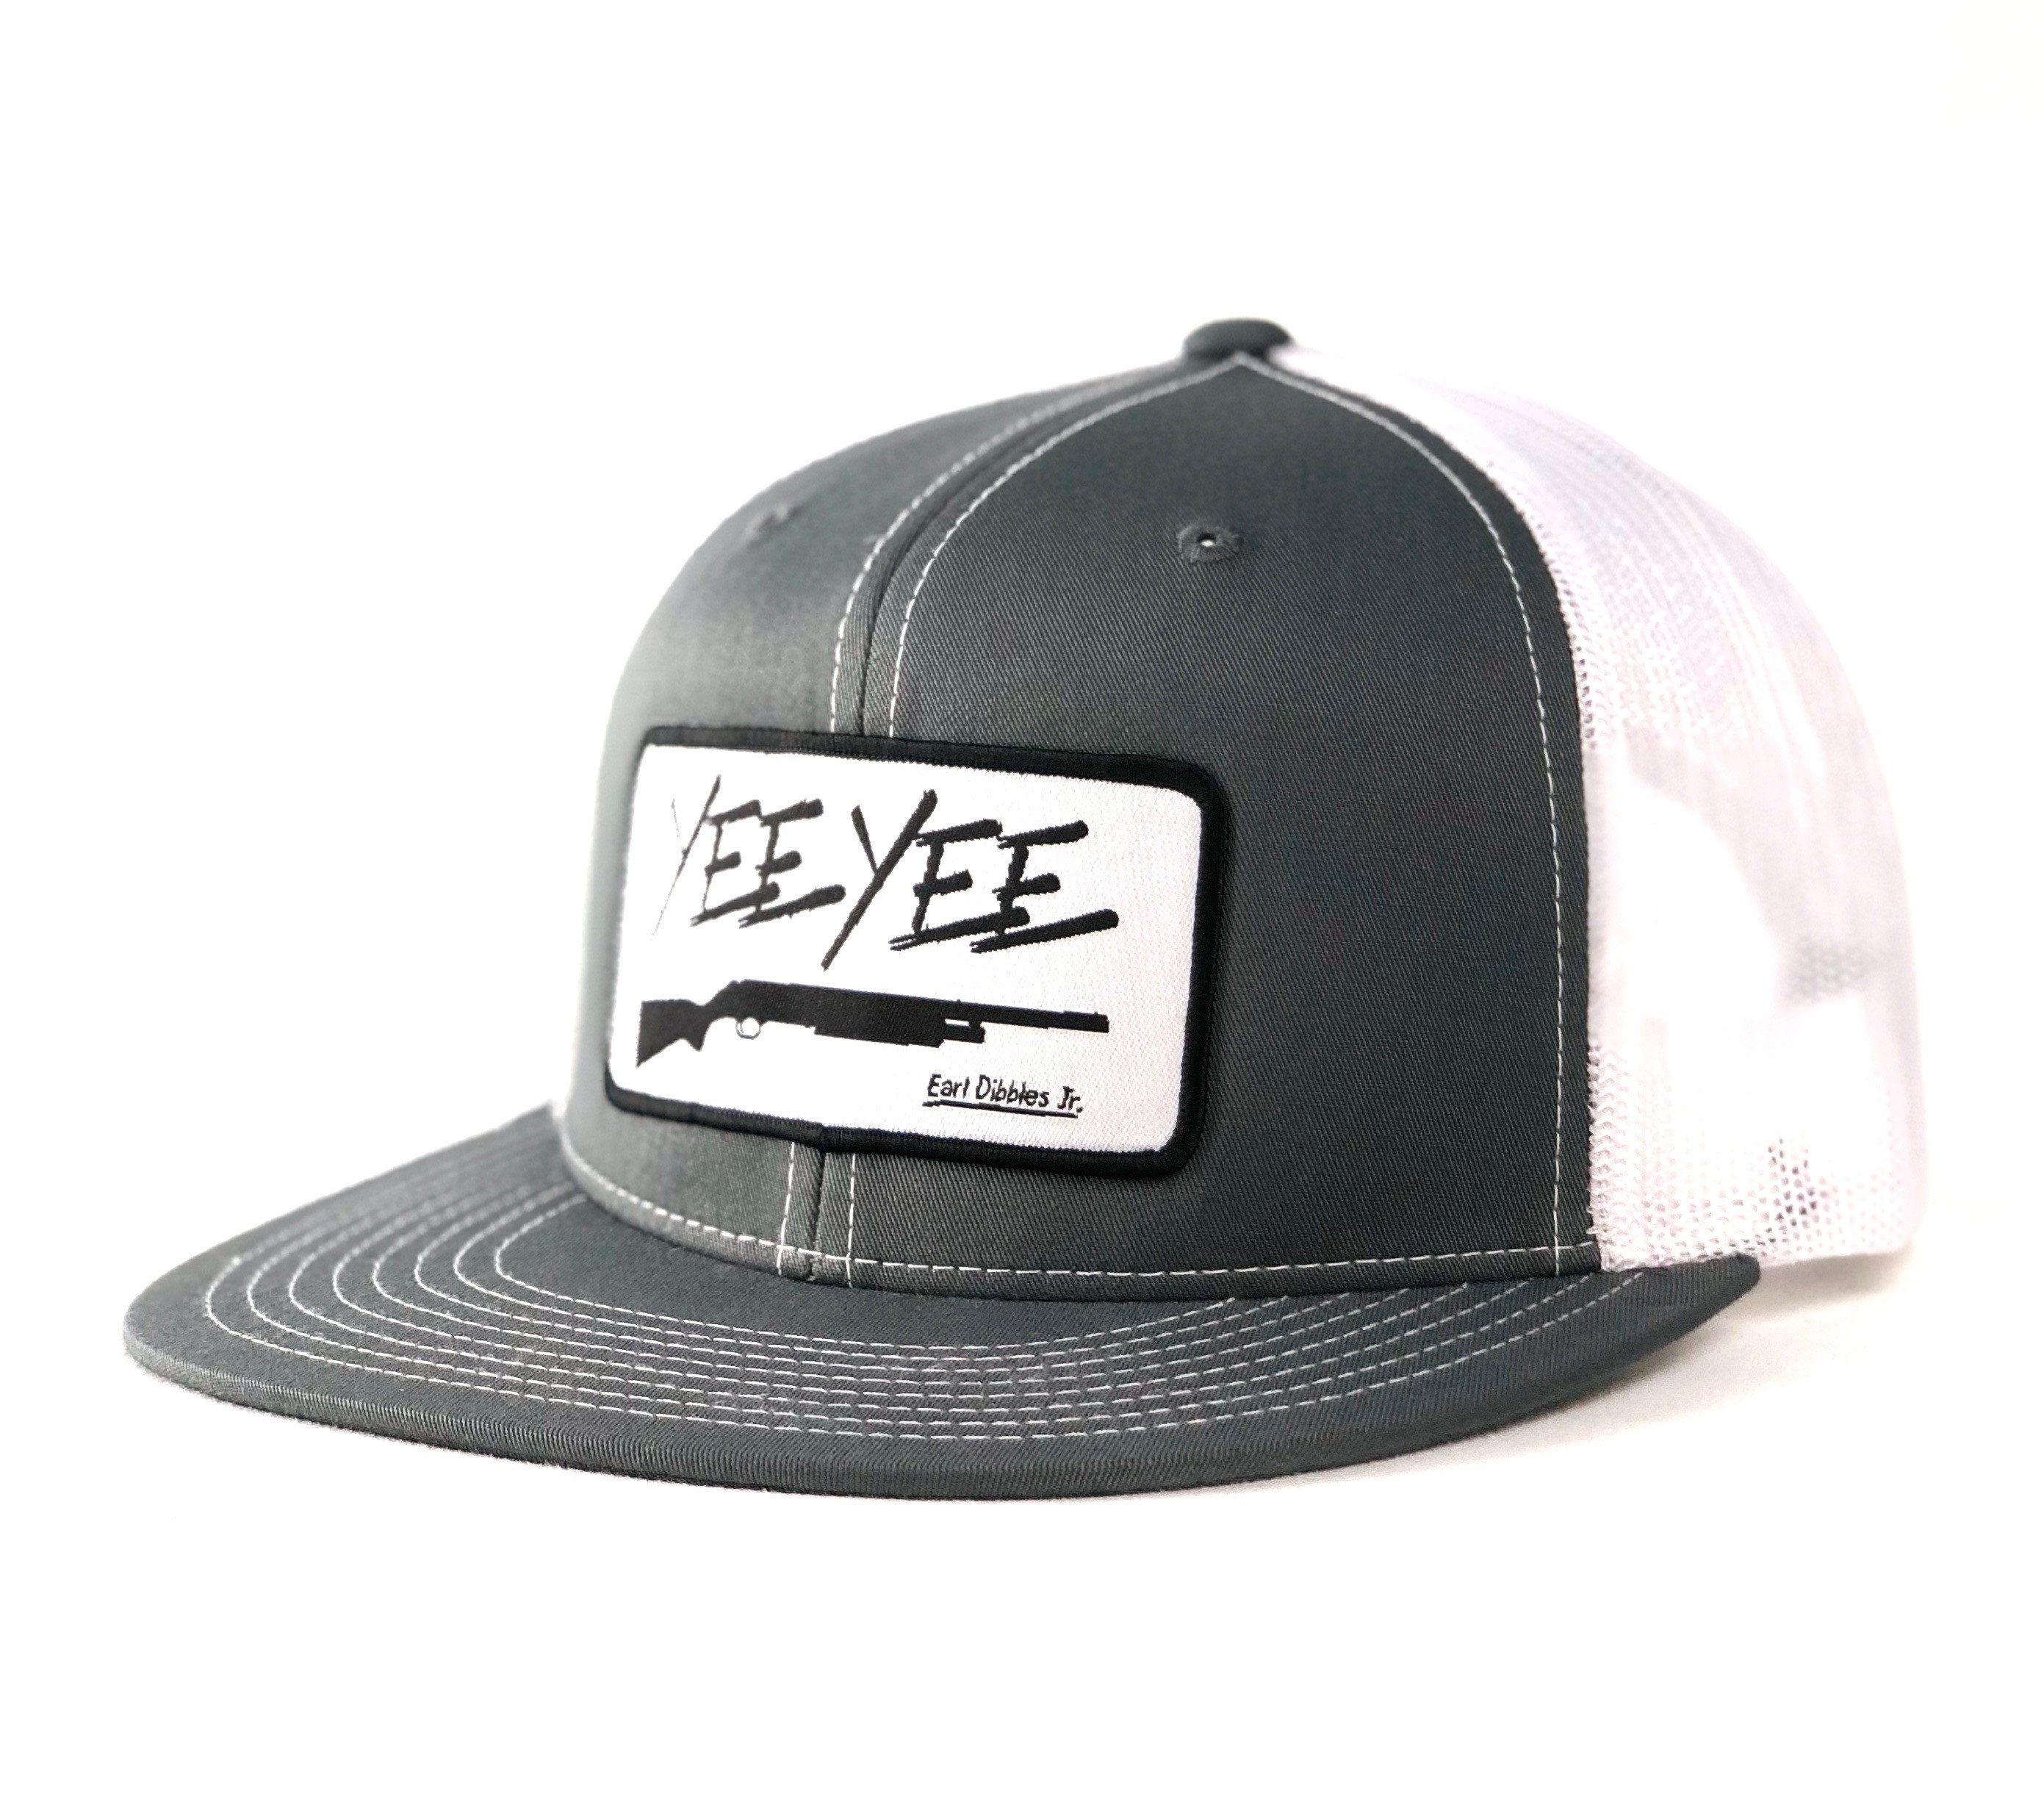 Yee Yee Flat Bill Trucker